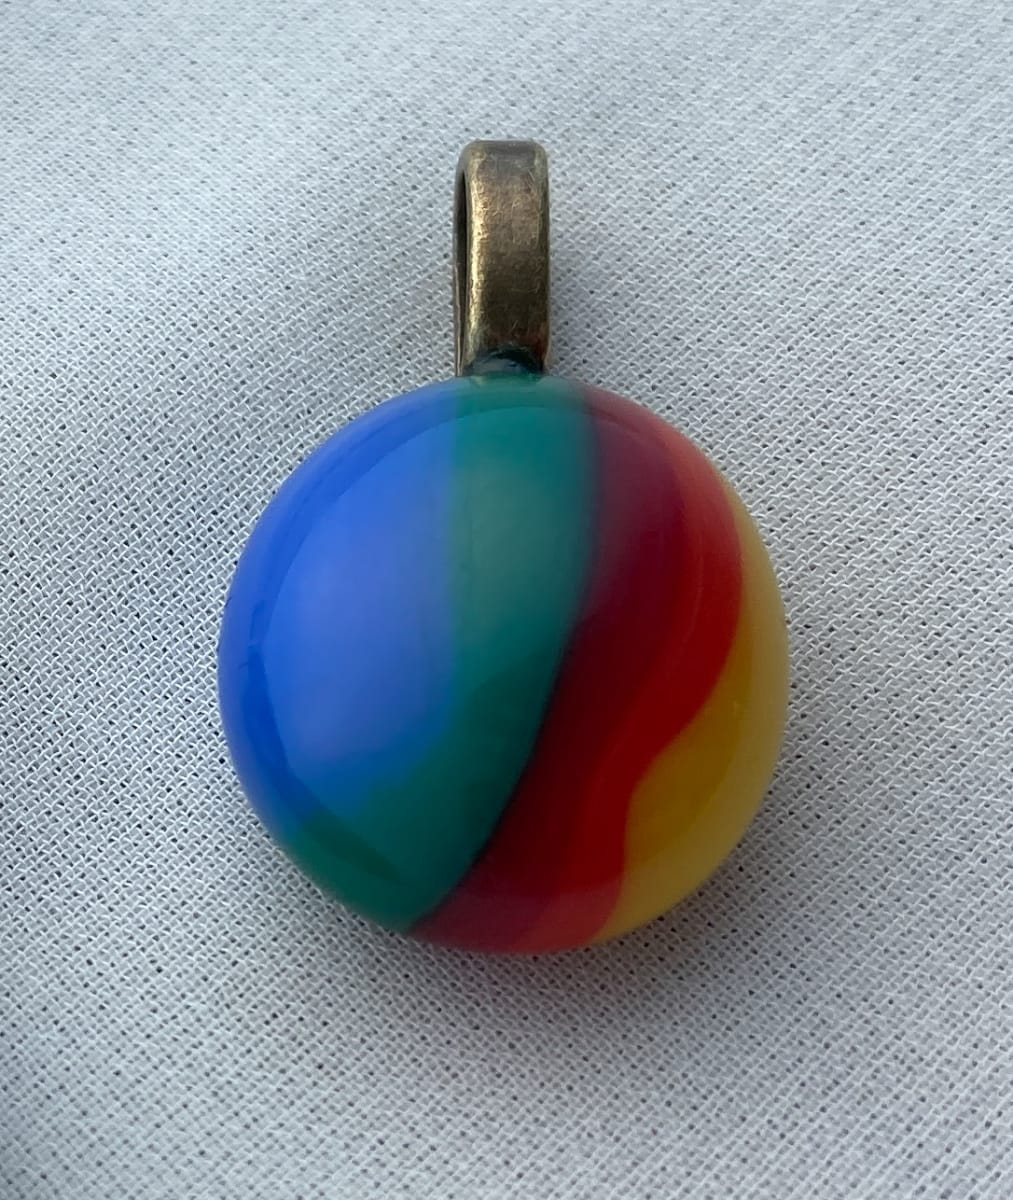 Fused glass pendant #71 by Shayna Heller